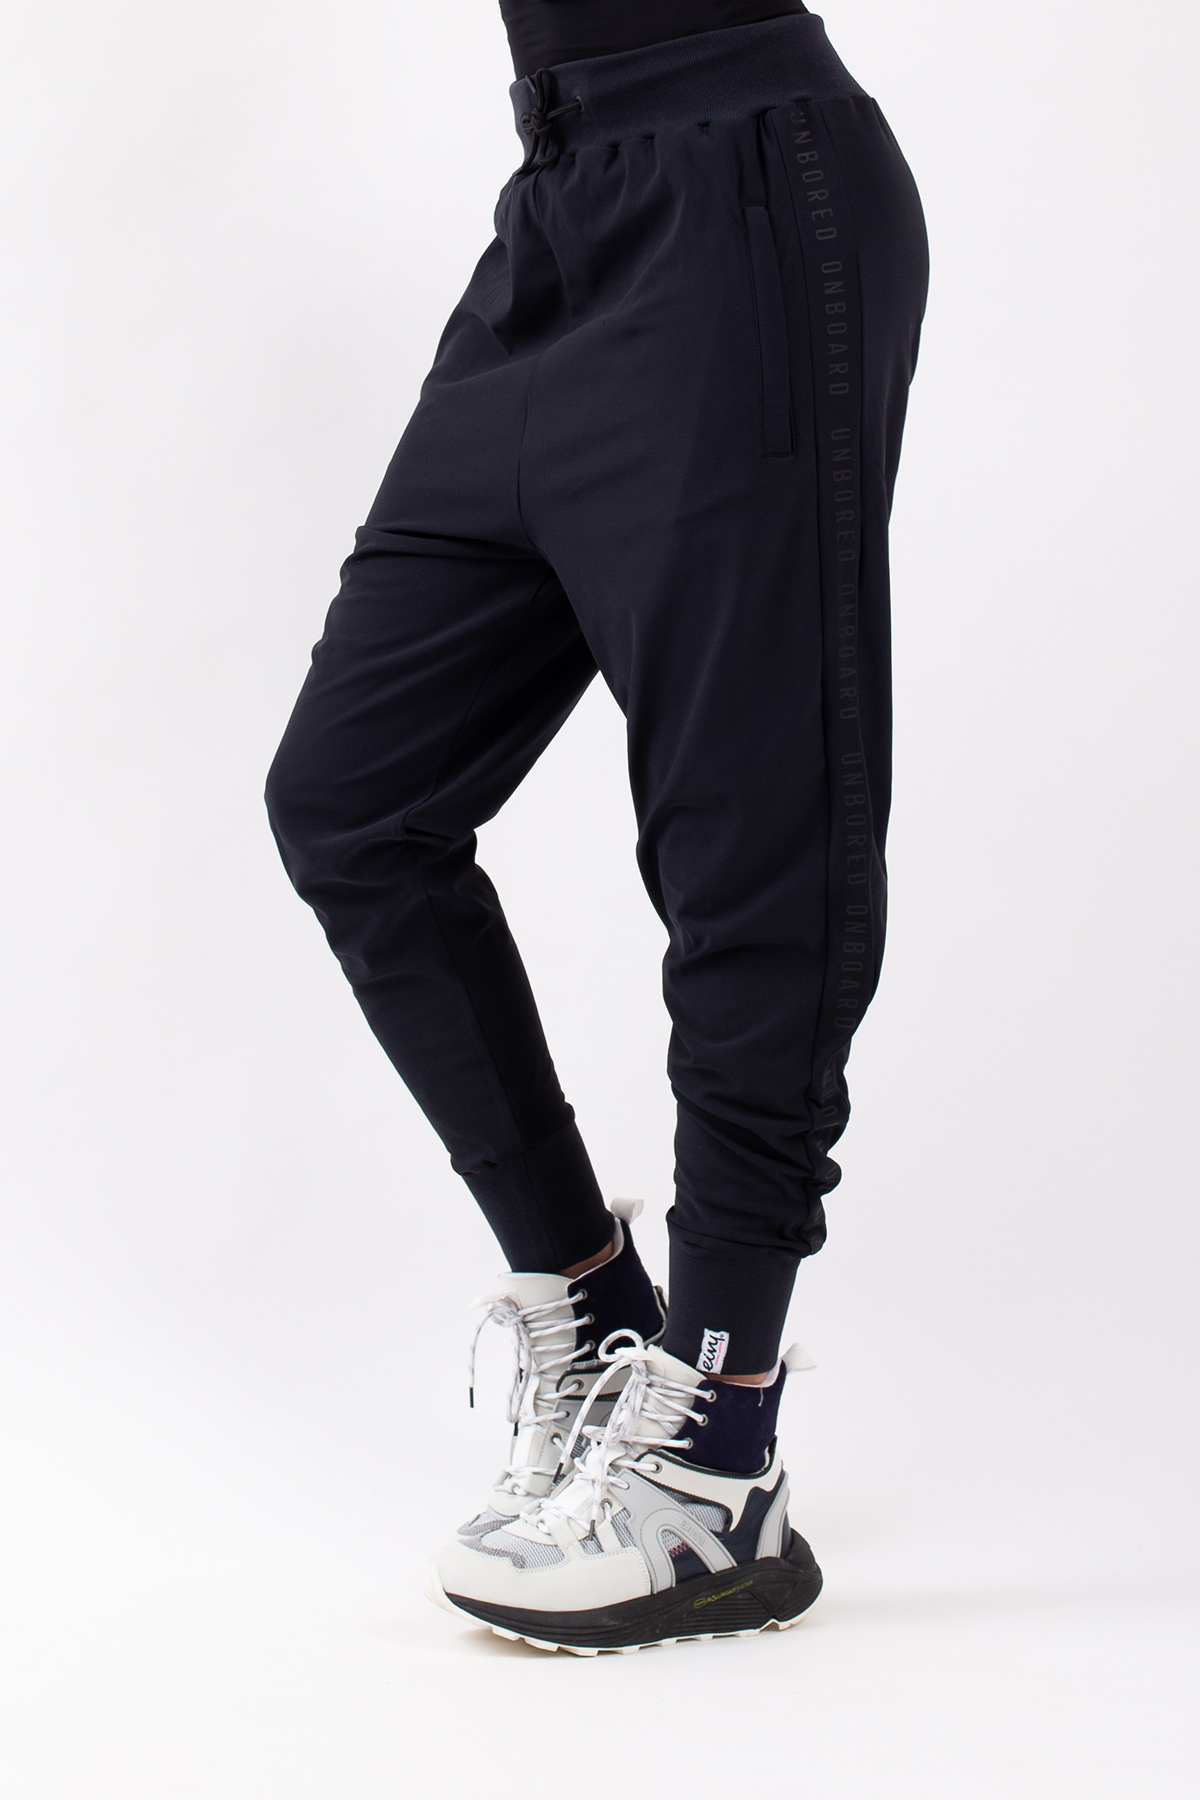 Byxor | Harlem Travel Pants - Black | M